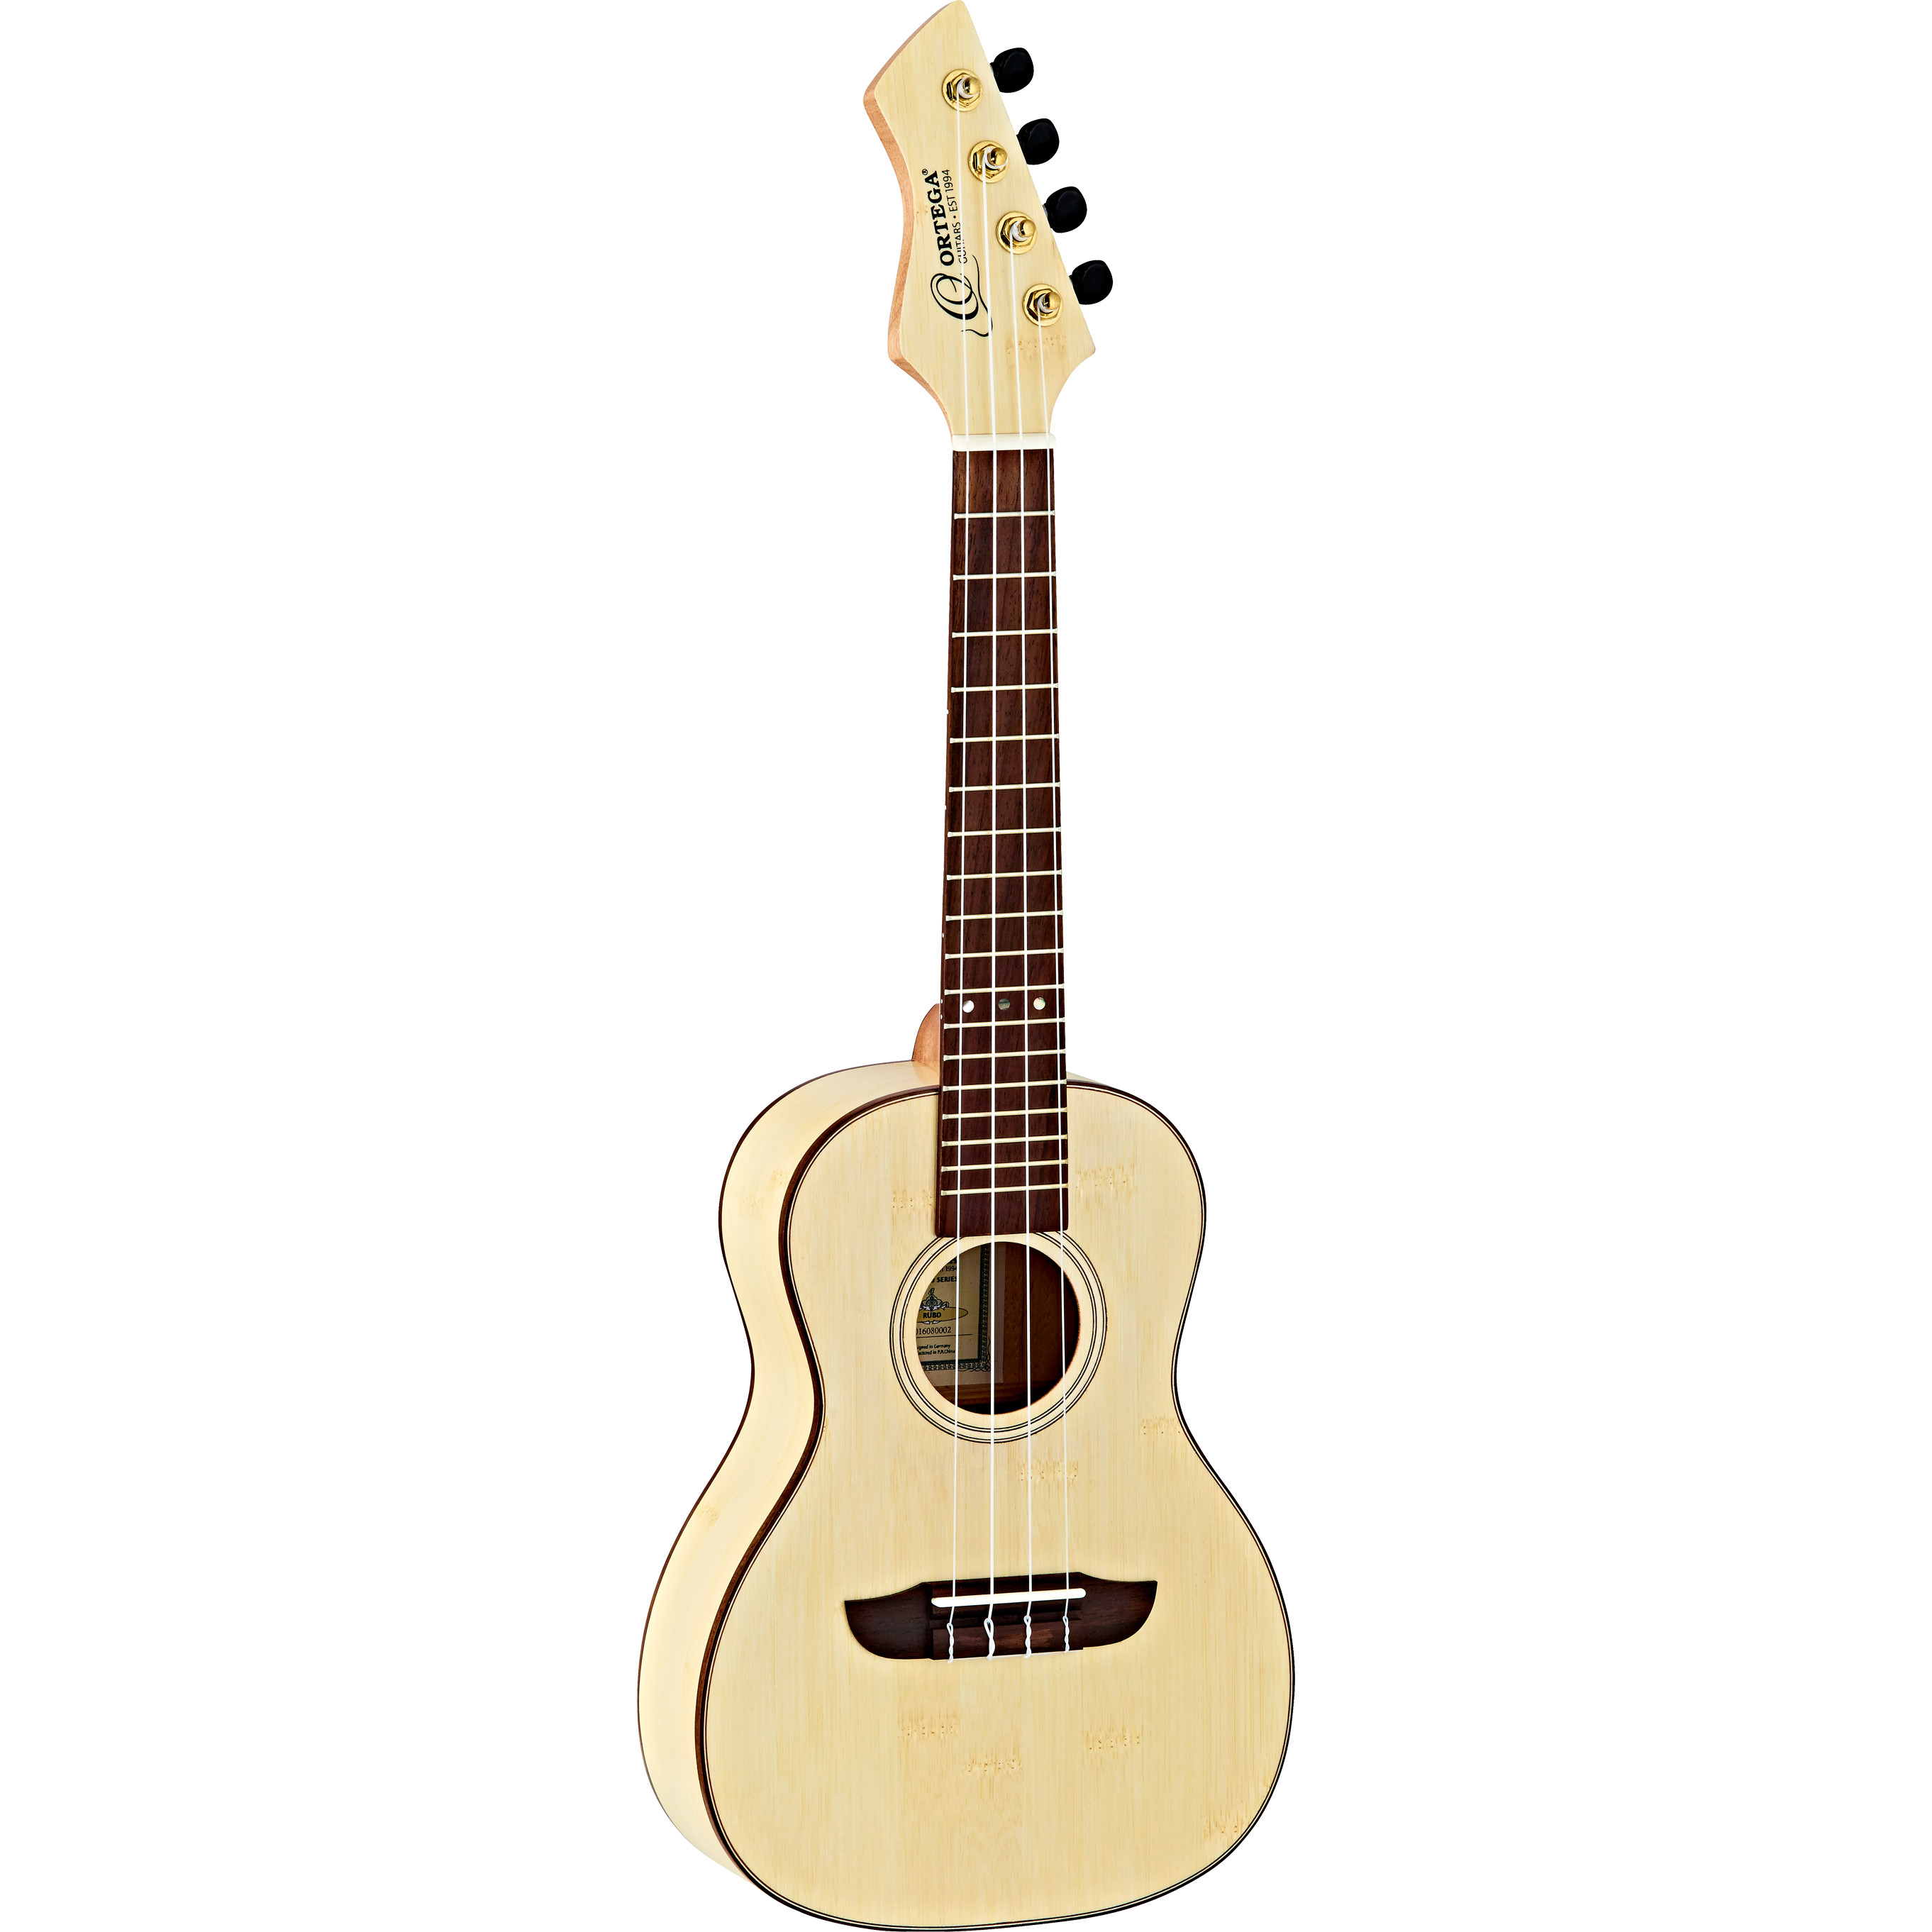 Ortega Horizon Series RUBO concert ukulele with gig bag